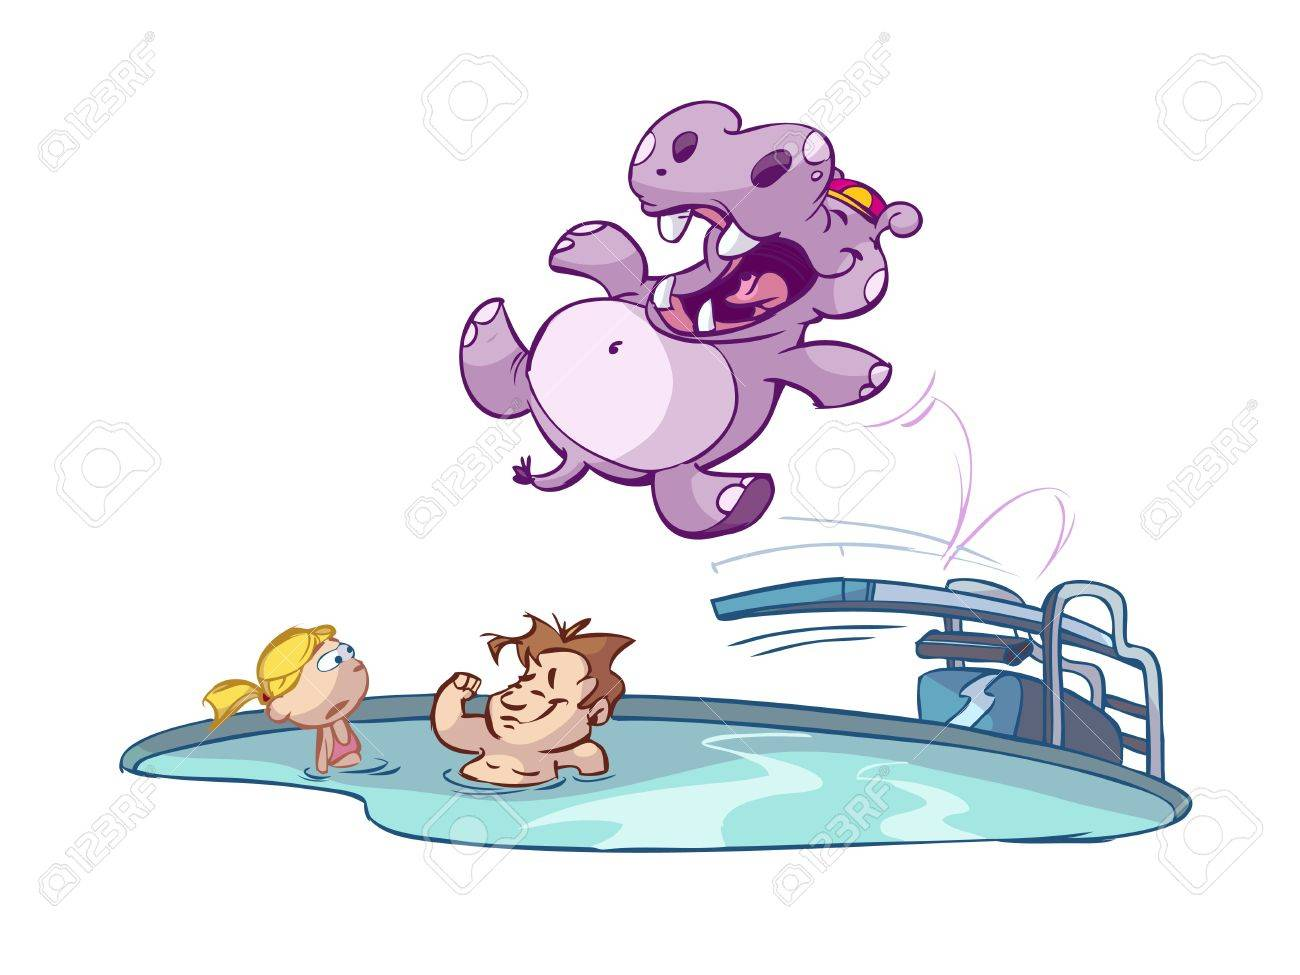 Hippo jumping in pool with kids Stock Vector - 7247732